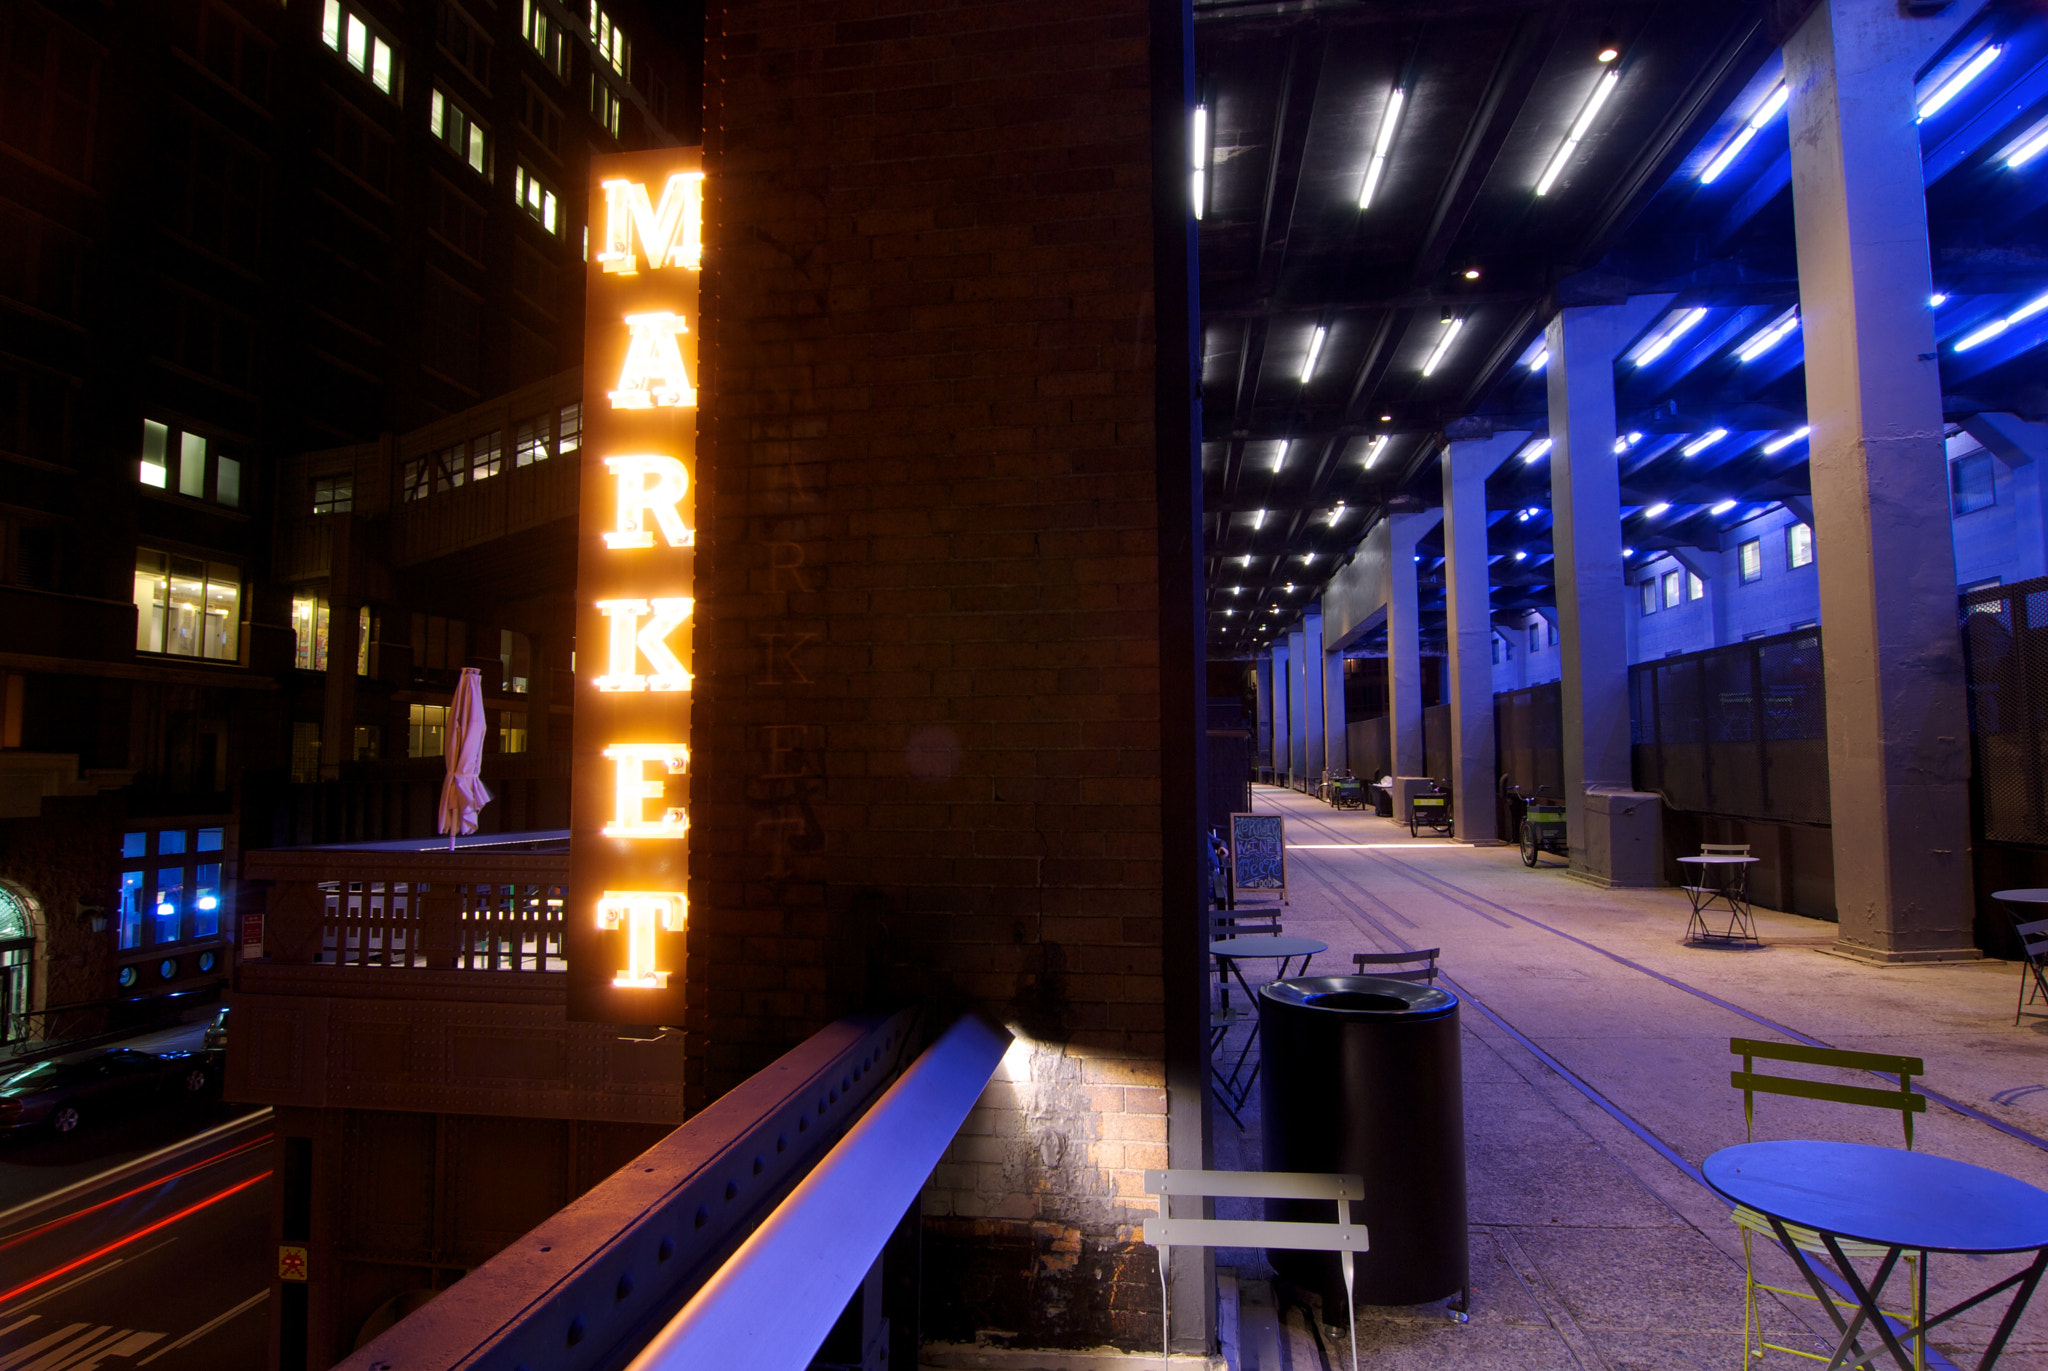 Photograph Market sign at the highline in NY by Steve Dolinsky on 500px